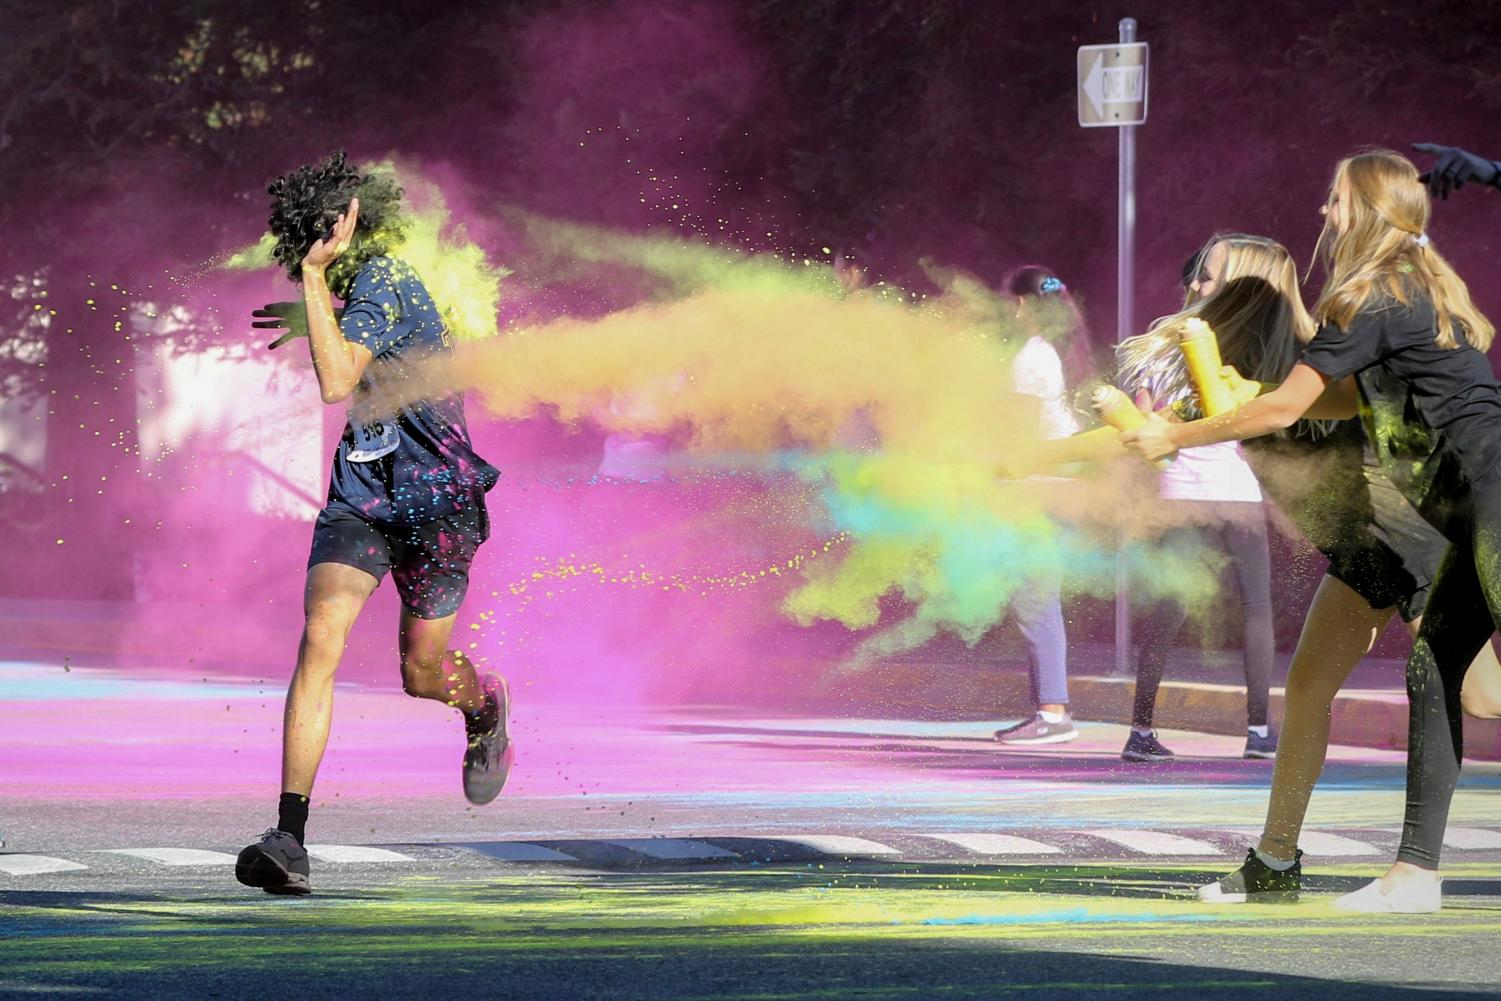 Runner gets sprayed with color as he finishes the race. Photo Courtesy of Leon Yao.